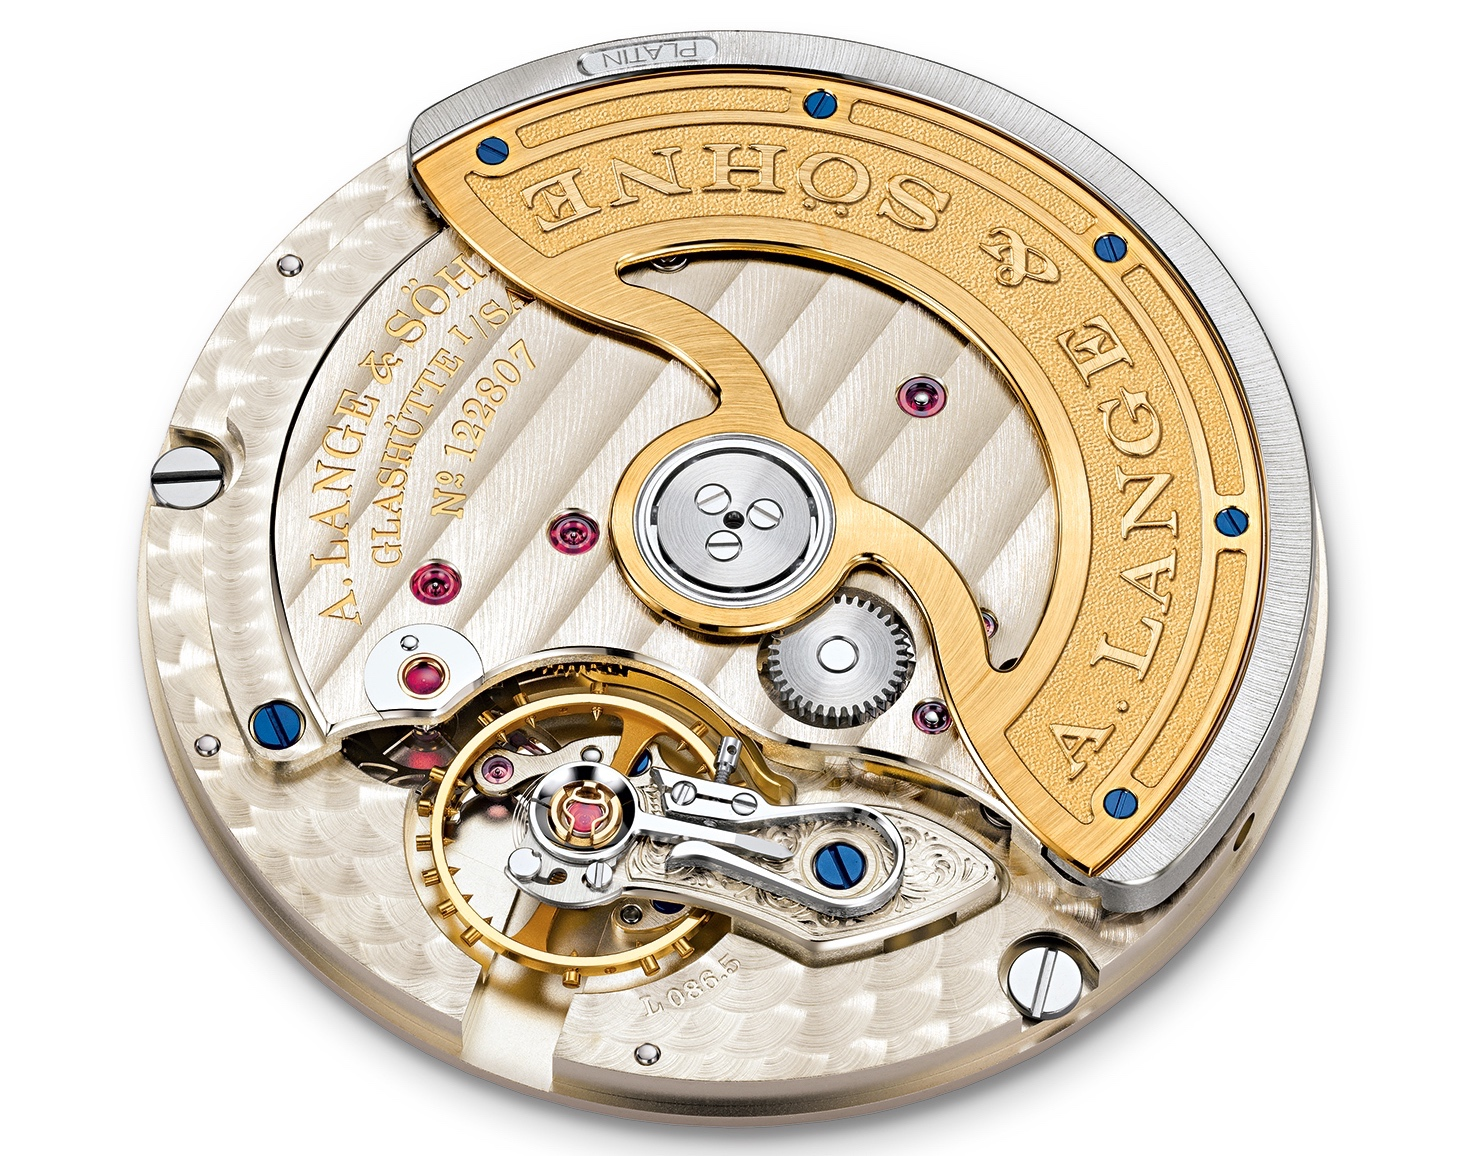 saxonia-moon-phase-movement